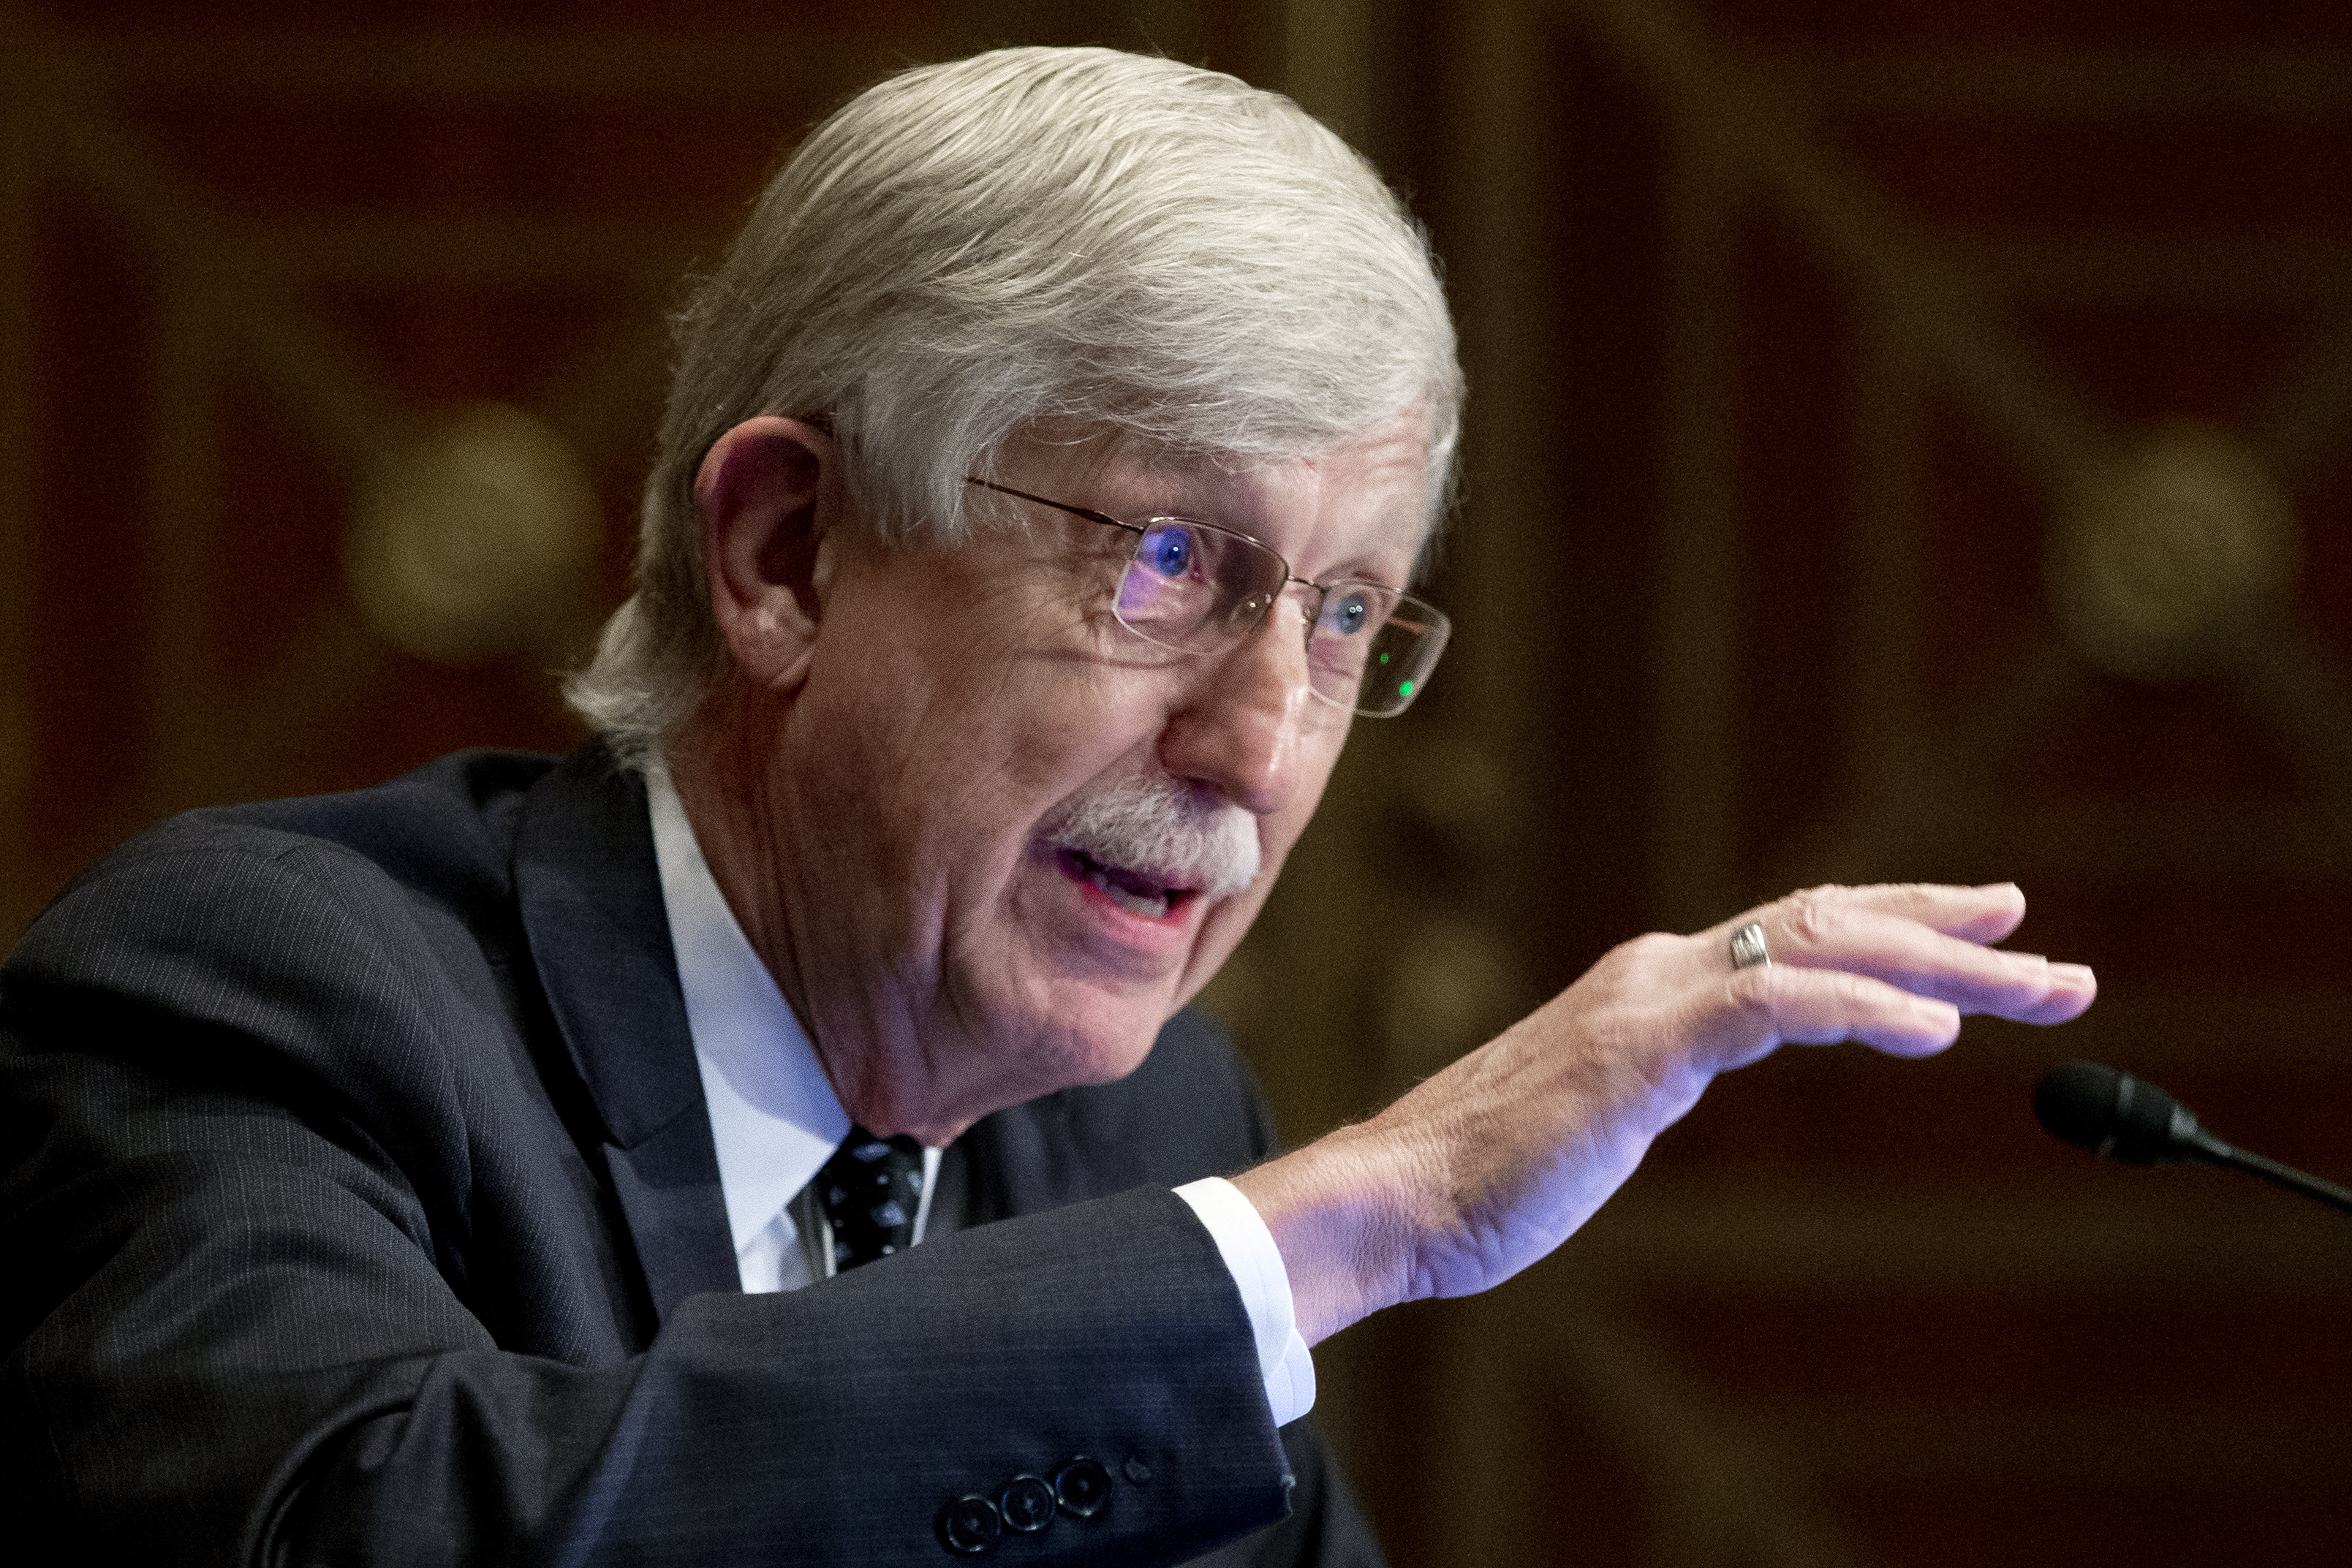 FILE - Dr. Francis Collins, director of the National Institutes of Health, appears before a Senate Health, Education, Labor and Pensions Committee hearing to discuss vaccines and protecting public health during the coronavirus pandemic on Capitol Hill, on Wednesday, Sept. 9, 2020, in Washington. Collins says he is stepping down by the end of the year, having led the research center for 12 years and becoming a prominent source of public information during the coronavirus pandemic. A formal announcement was expected Tuesday, Oct. 5, 2021 from NIH. (Michael Reynolds/Pool via AP, File)